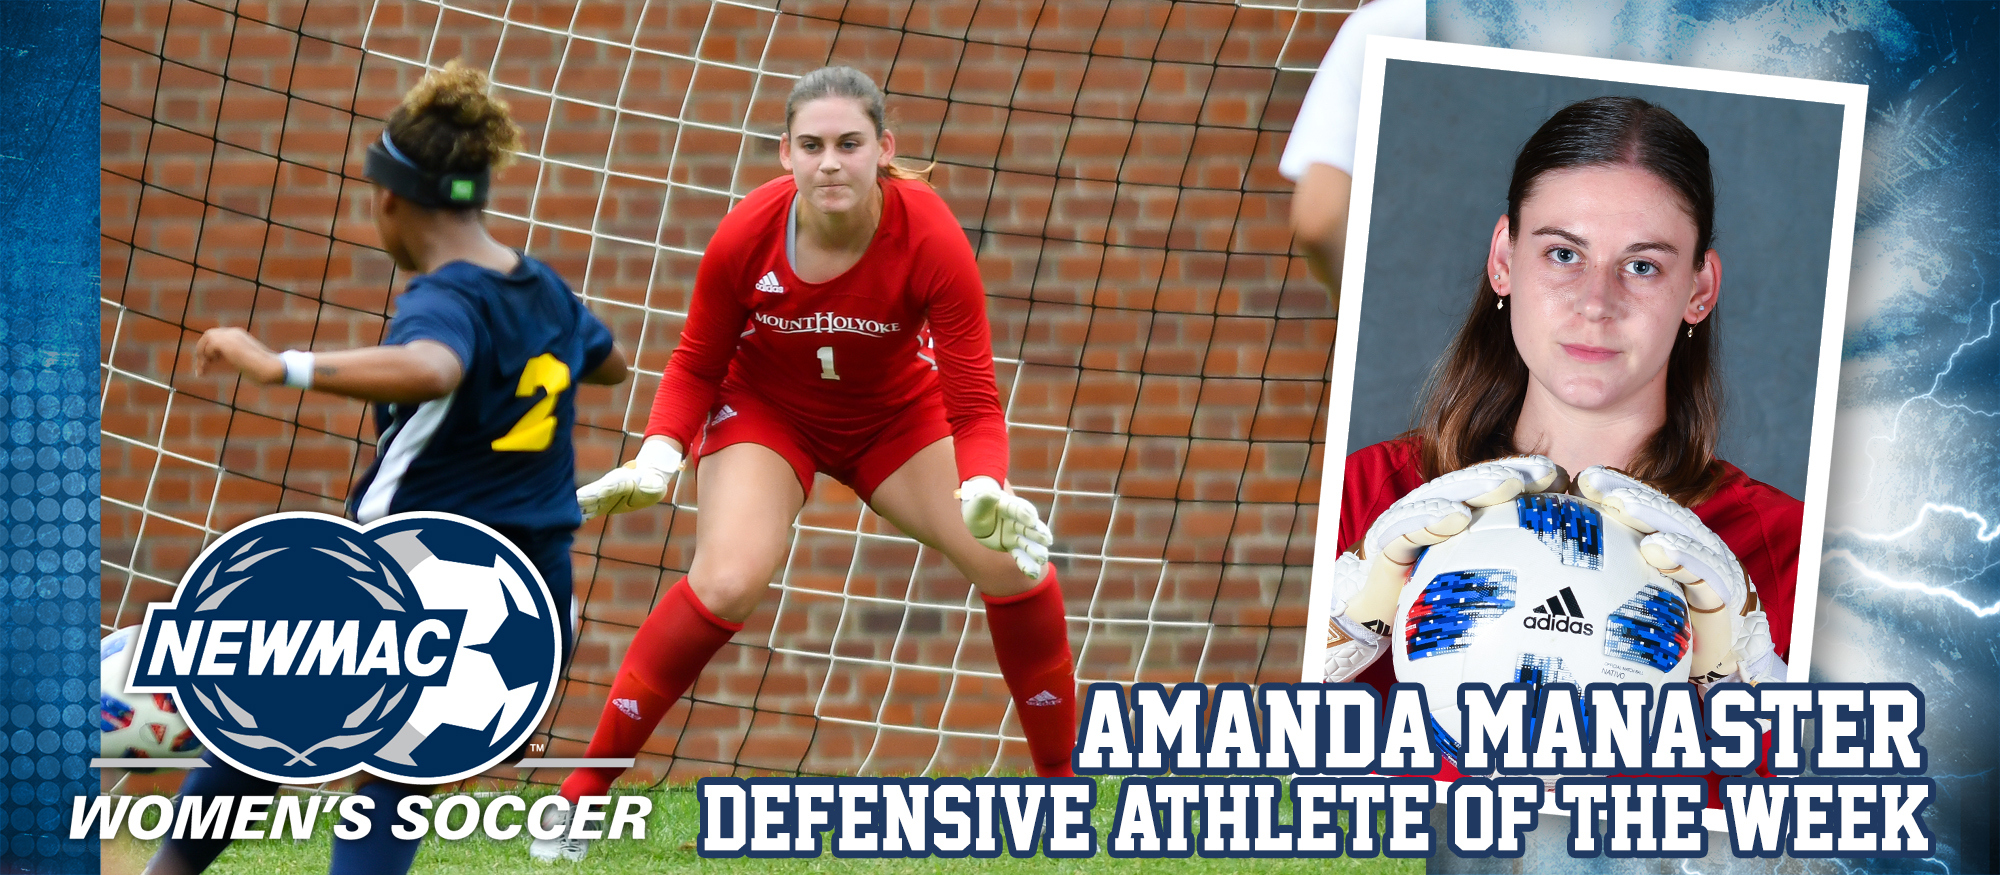 Photo showing Lyons soccer senior goalie Amanda Manaster, who was named the NEWMAC Defensive Athlete of the Week on September 4, 2018